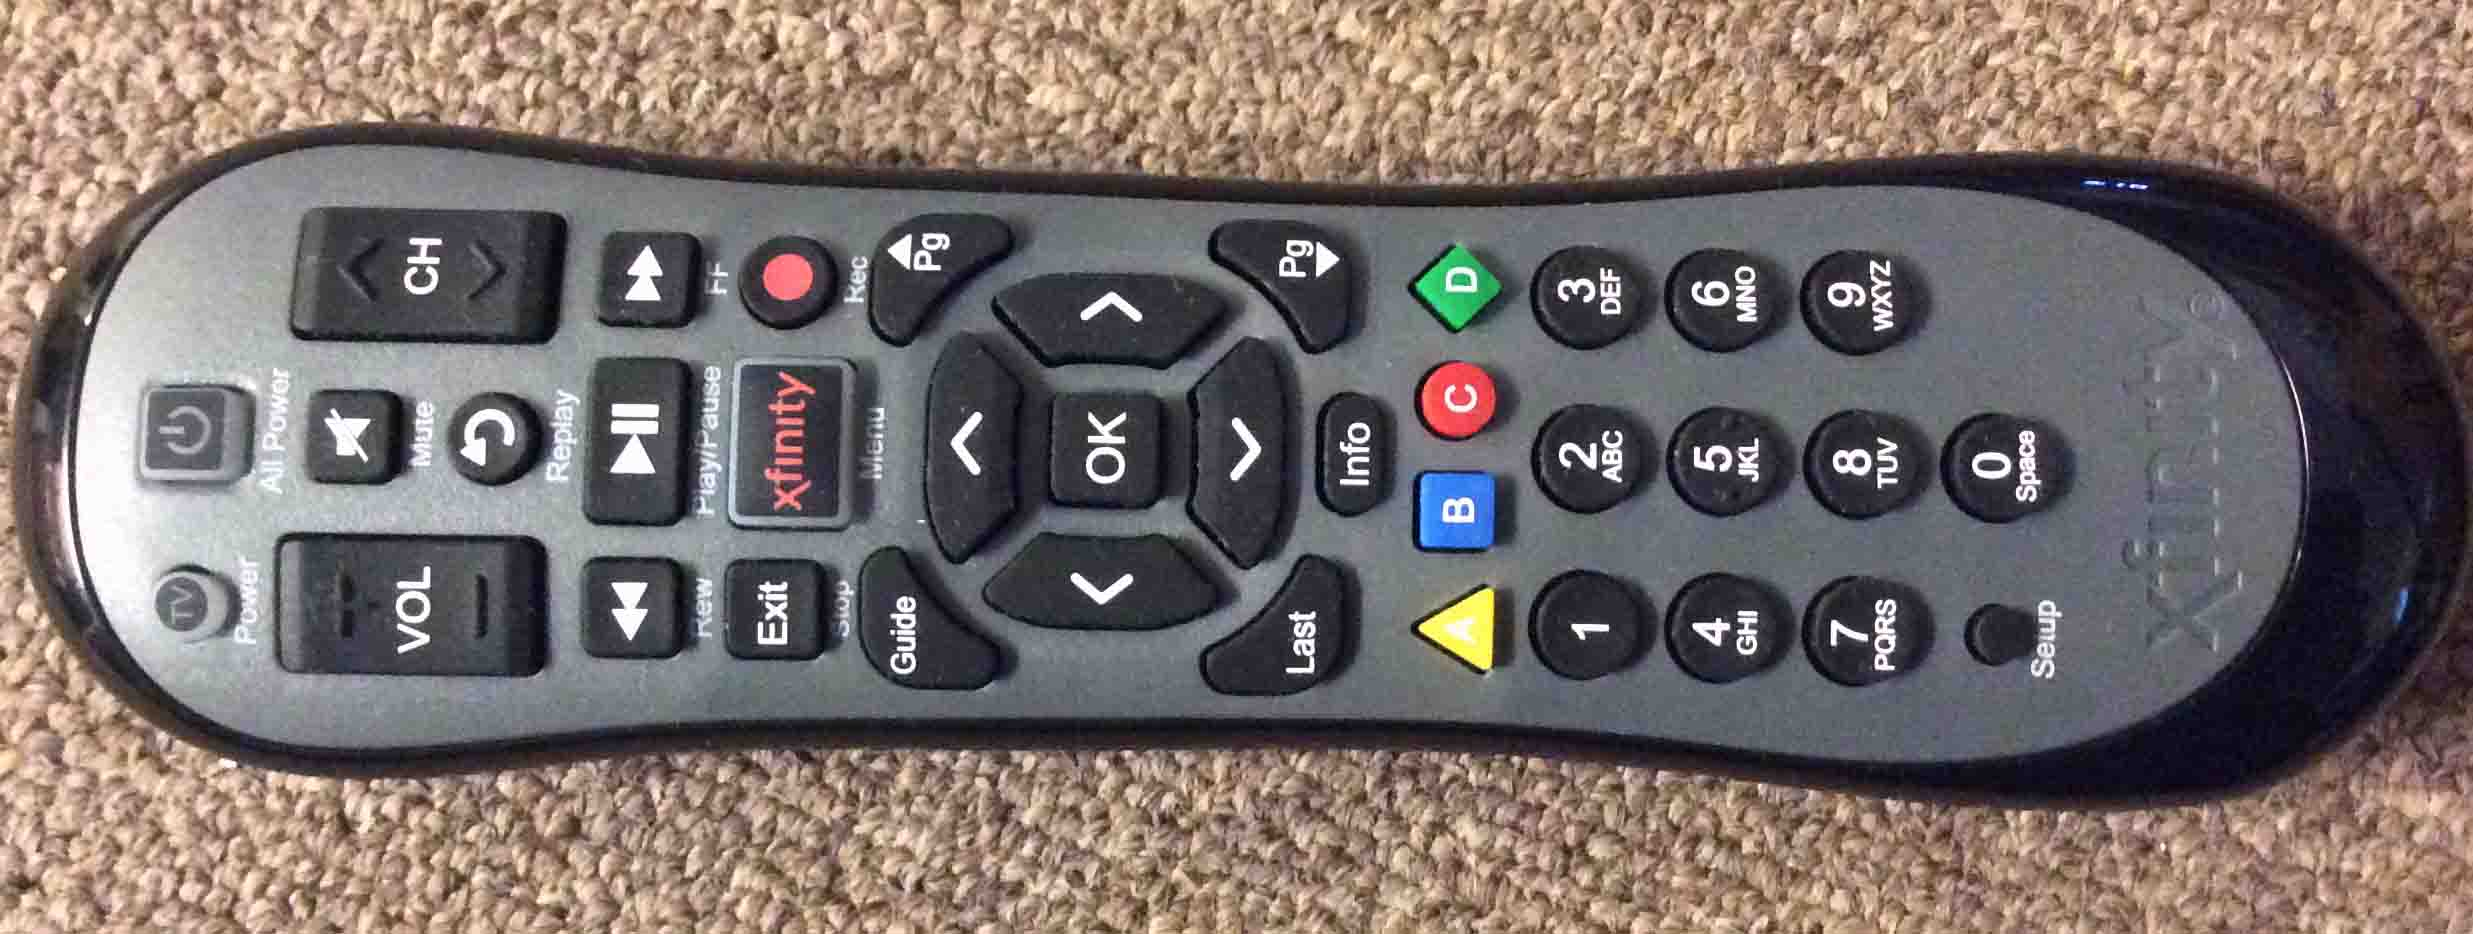 Xfinity XR2 U2 Comcast Remote Control Review | Tom's Tek Stop